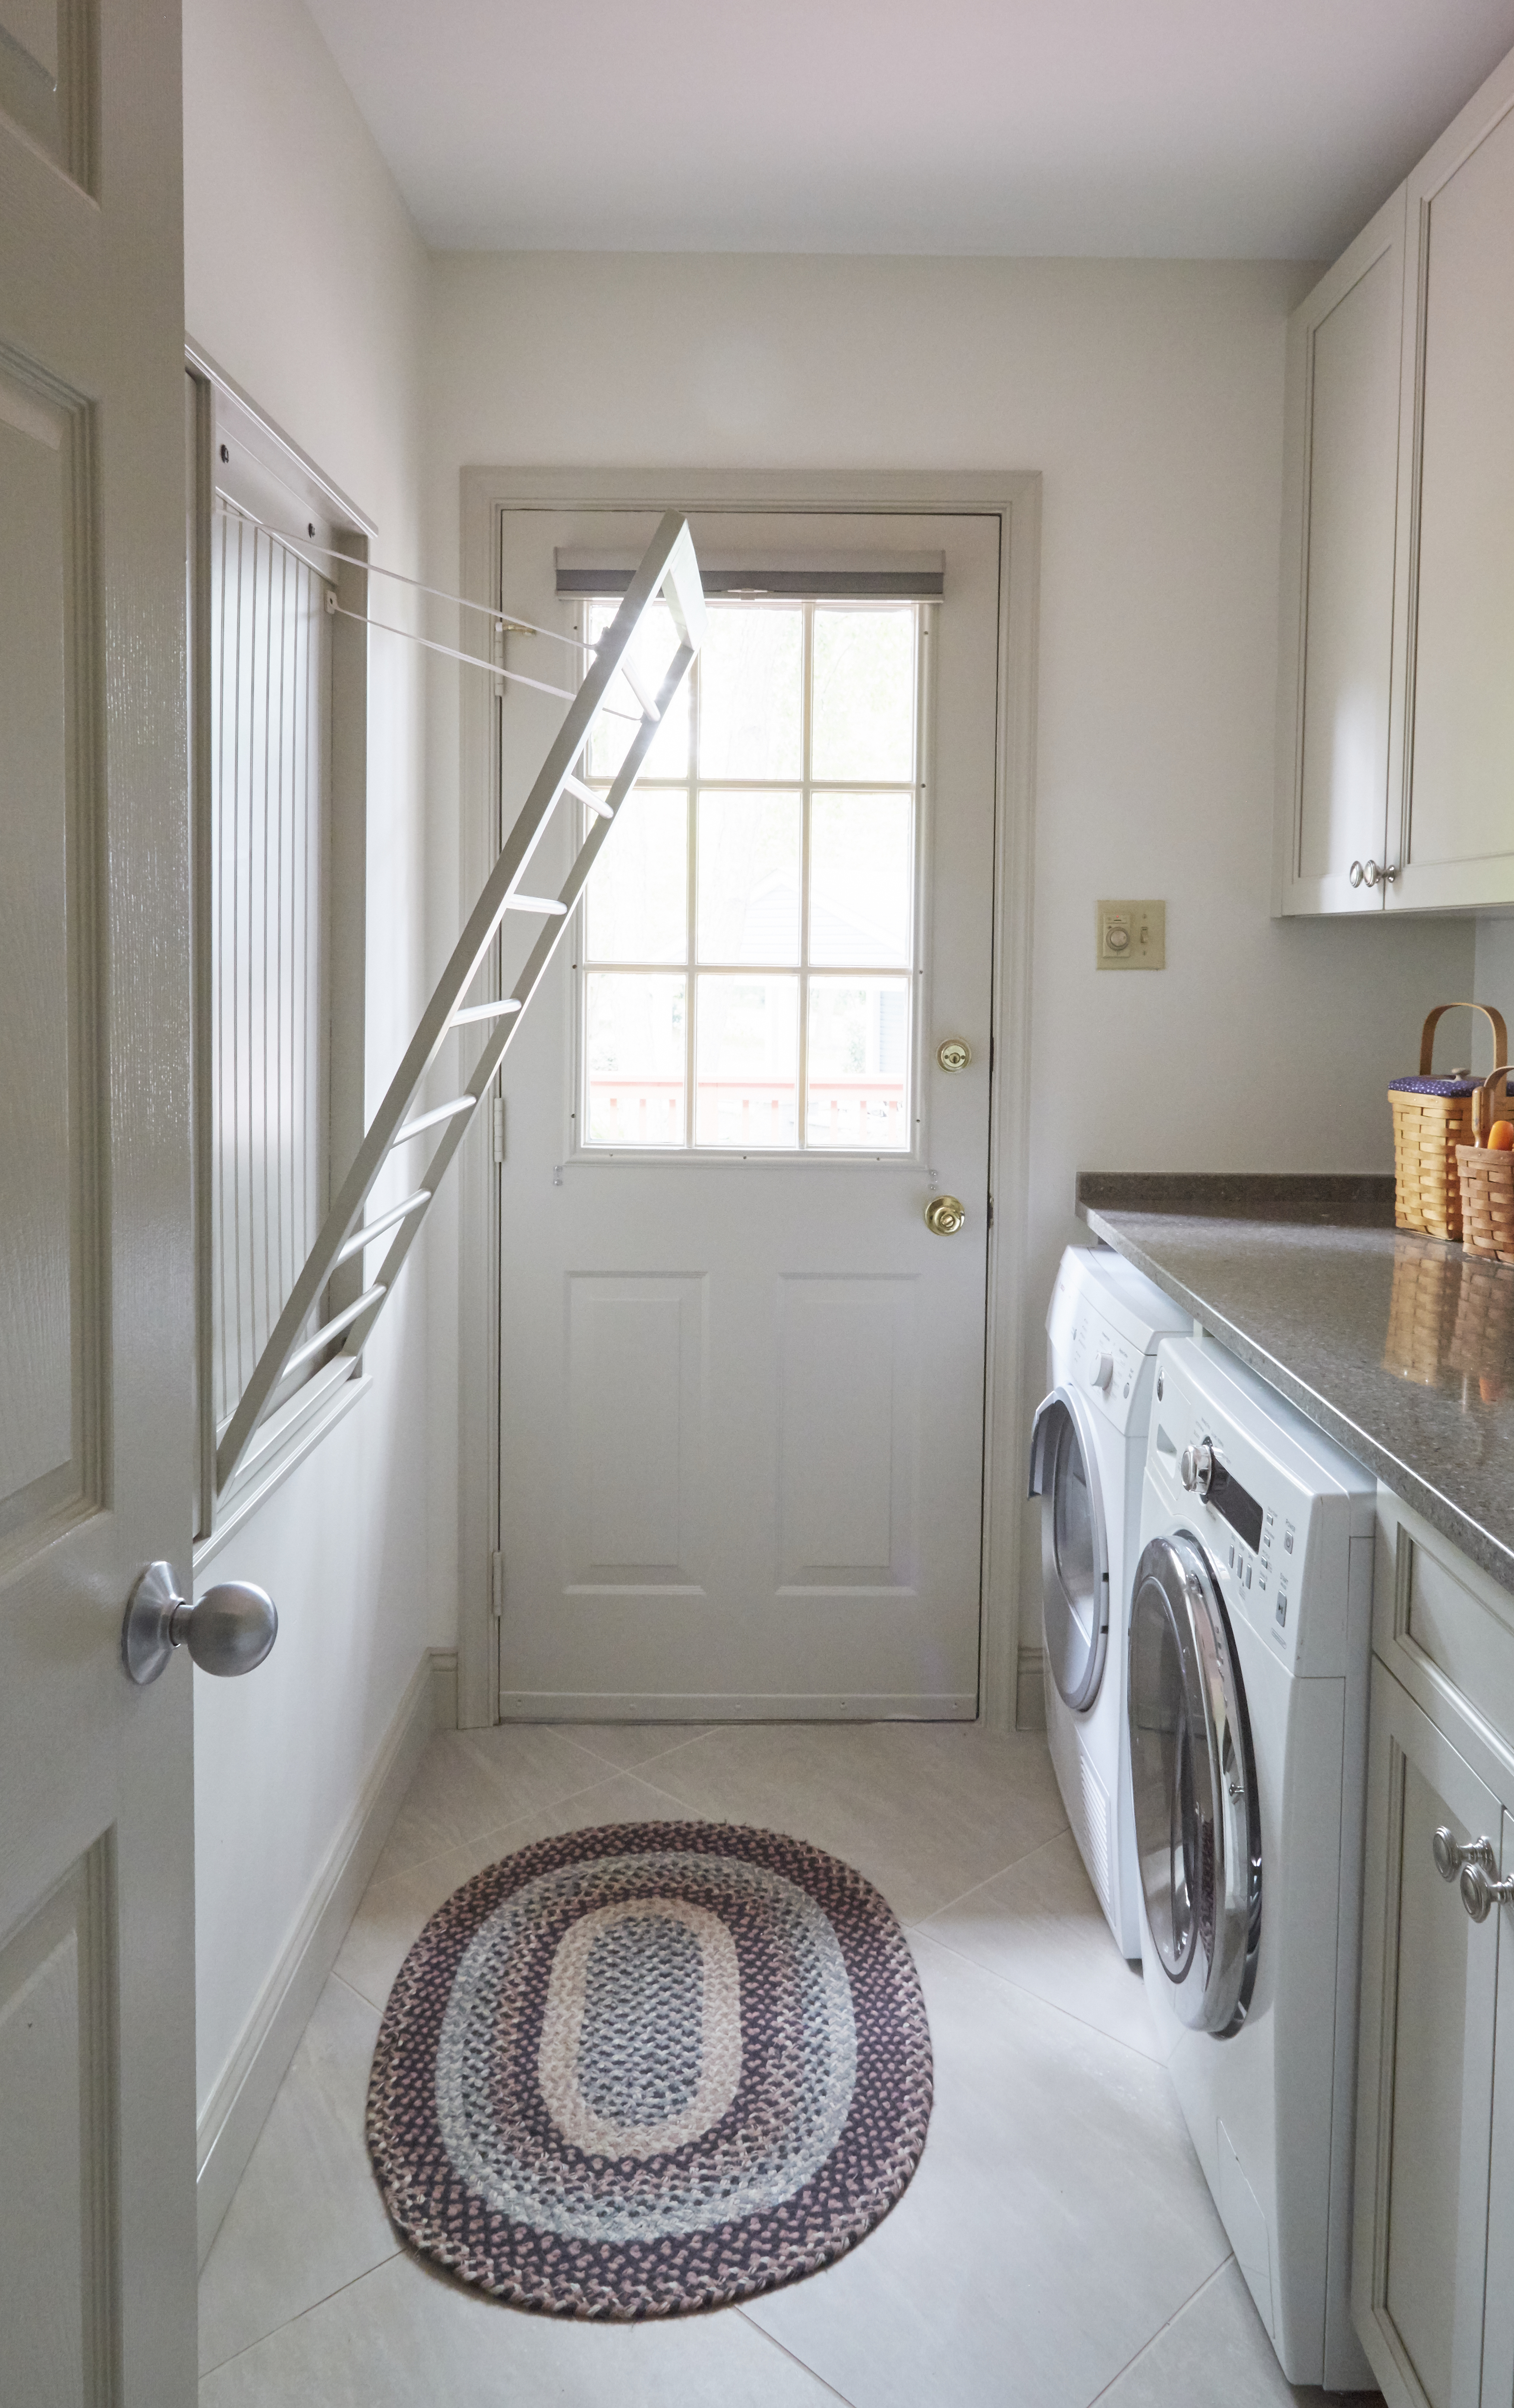 Home remodel contractors bucks county house remodel for Masters laundry